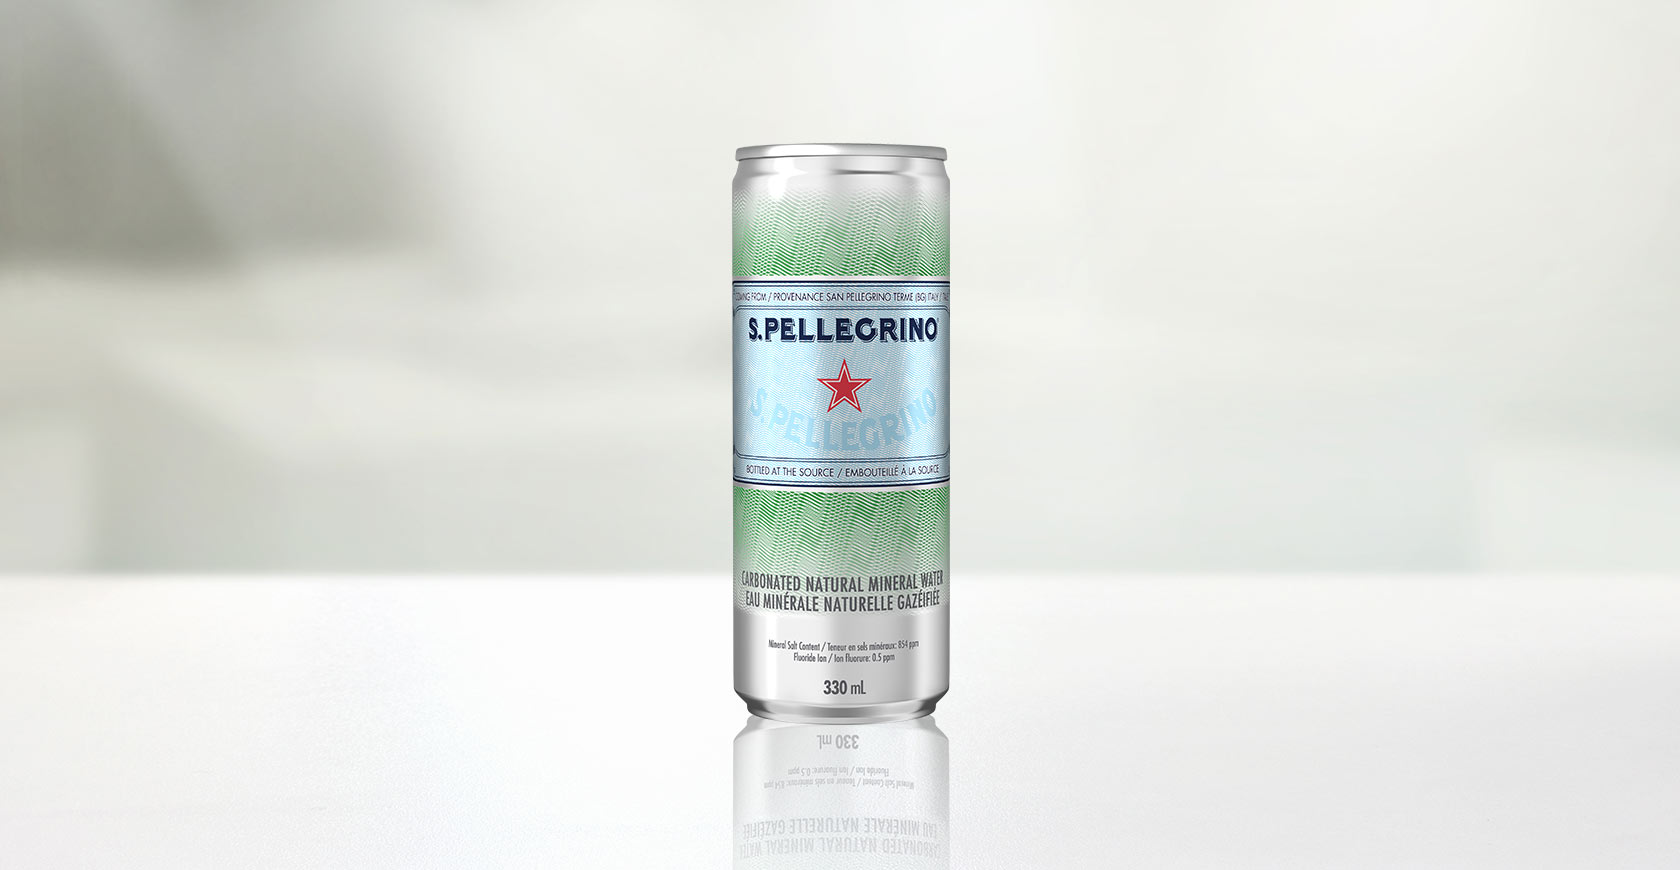 New S.PELLEGRINO® Sleek Can